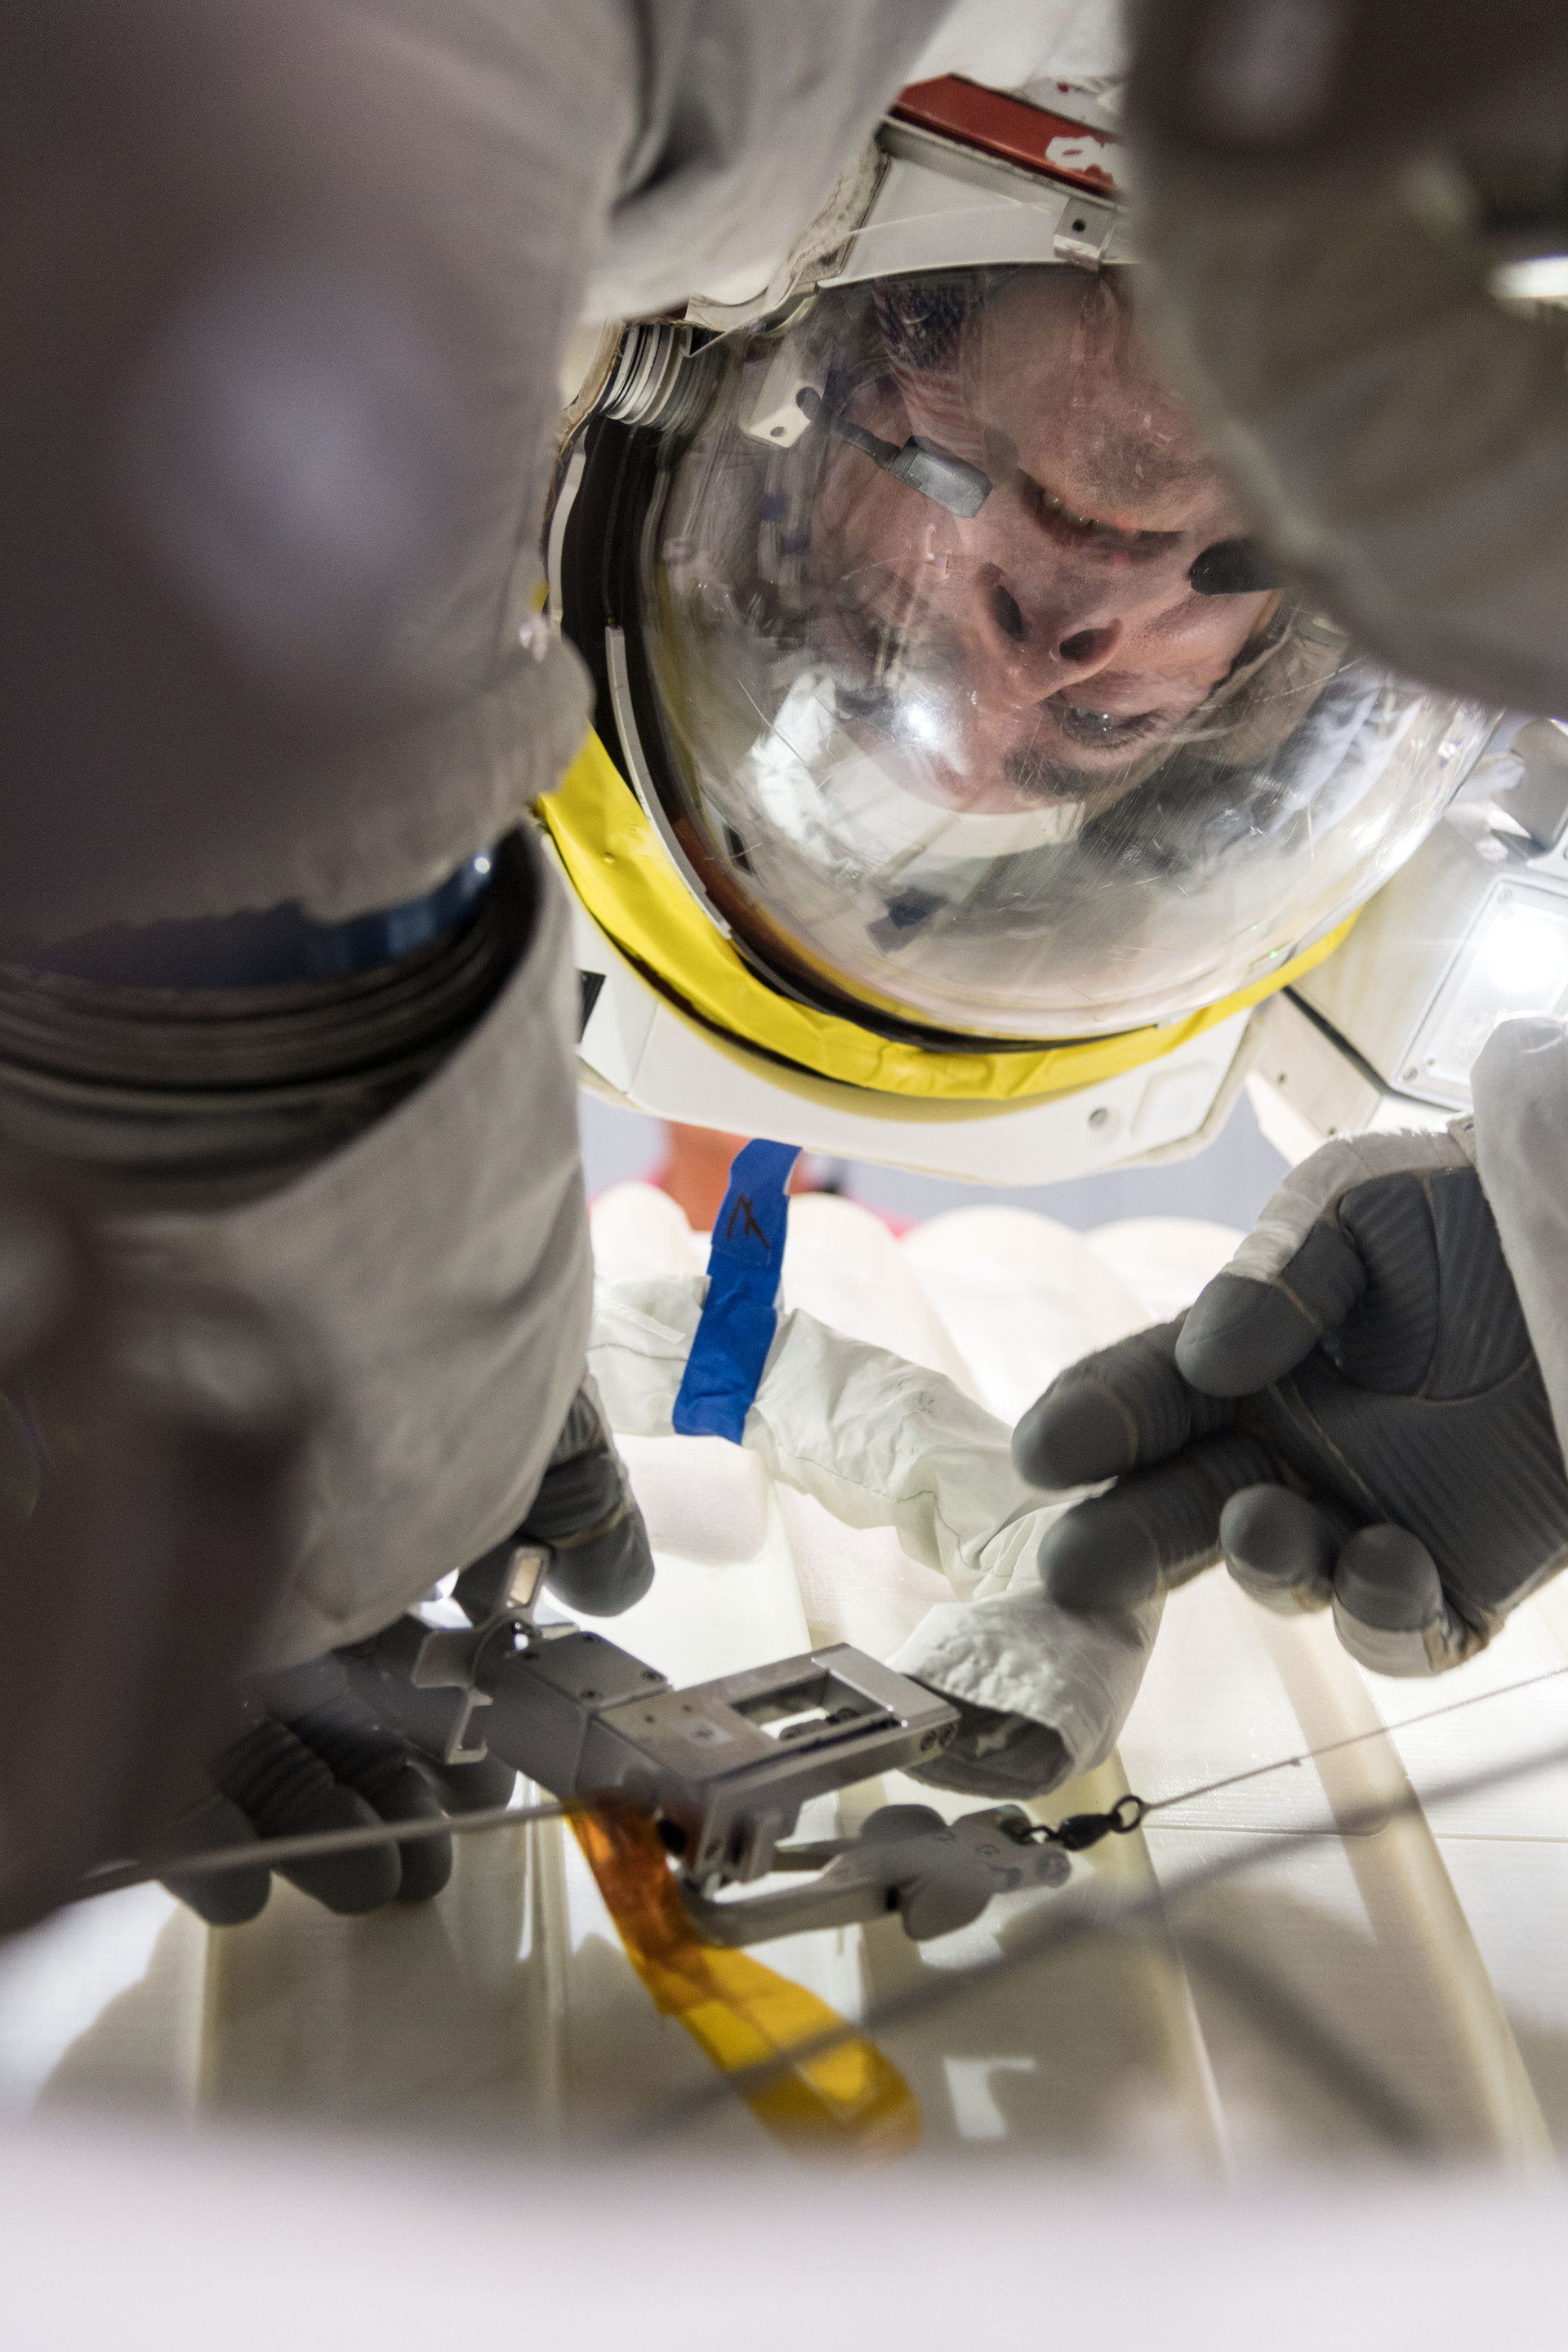 Astronaut Chris Cassidy training in the Active Response Gravity Offload System (ARGOS) during a microgravity simulation.